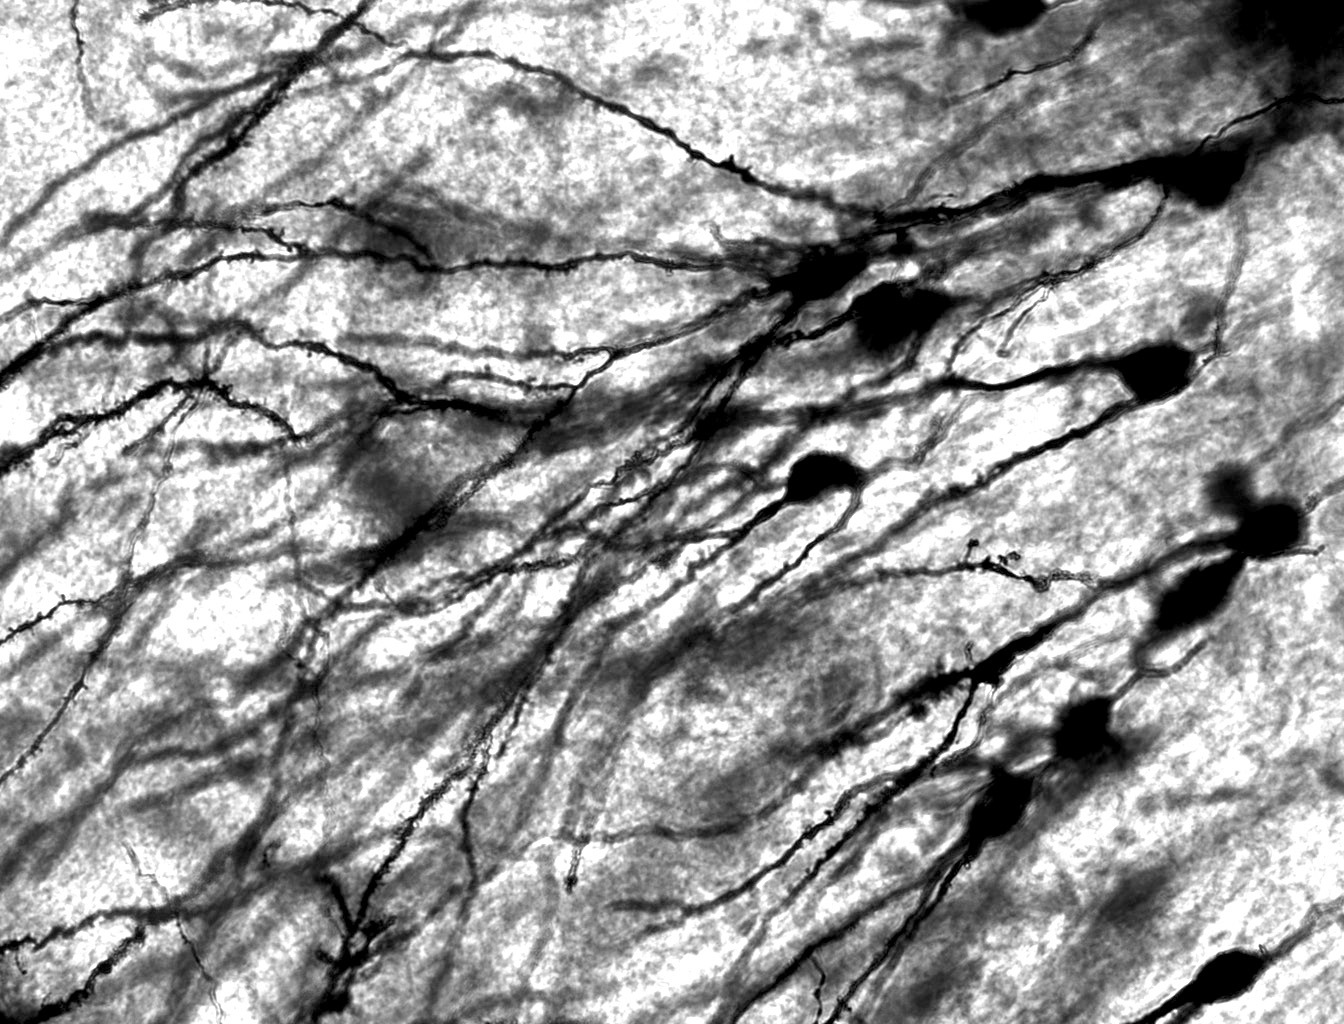 Neurons have been stained with a dye so they can be viewed. Groups of neurons are hypothesized to be diversified, so that redundancy is eliminated and efficiency throughout the brain is increased. (credit: Courtesy of Wikimedia Commons)